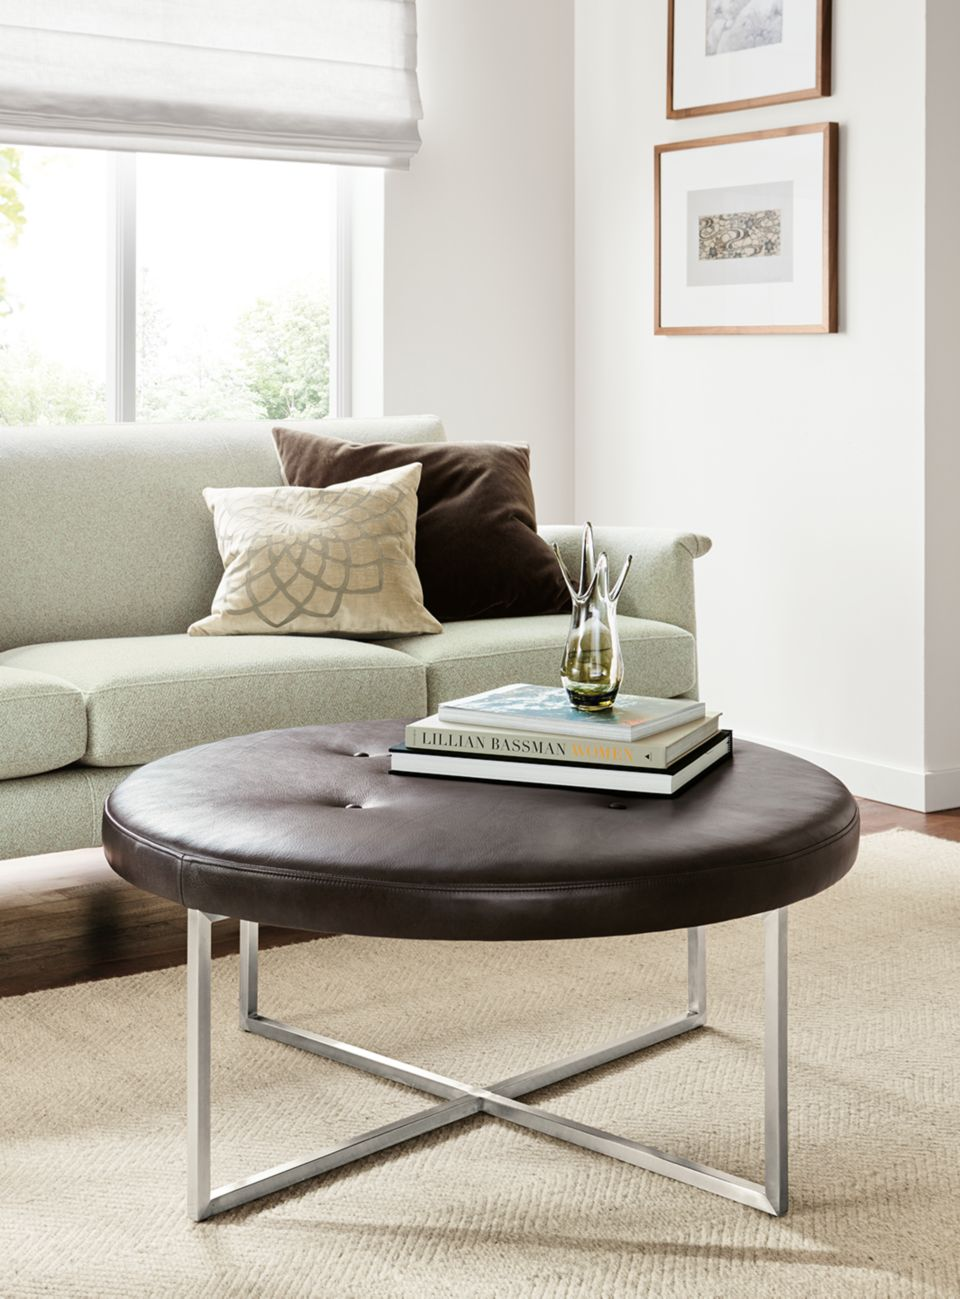 Detail of Sidney round ottoman with leather top and stainless steel base